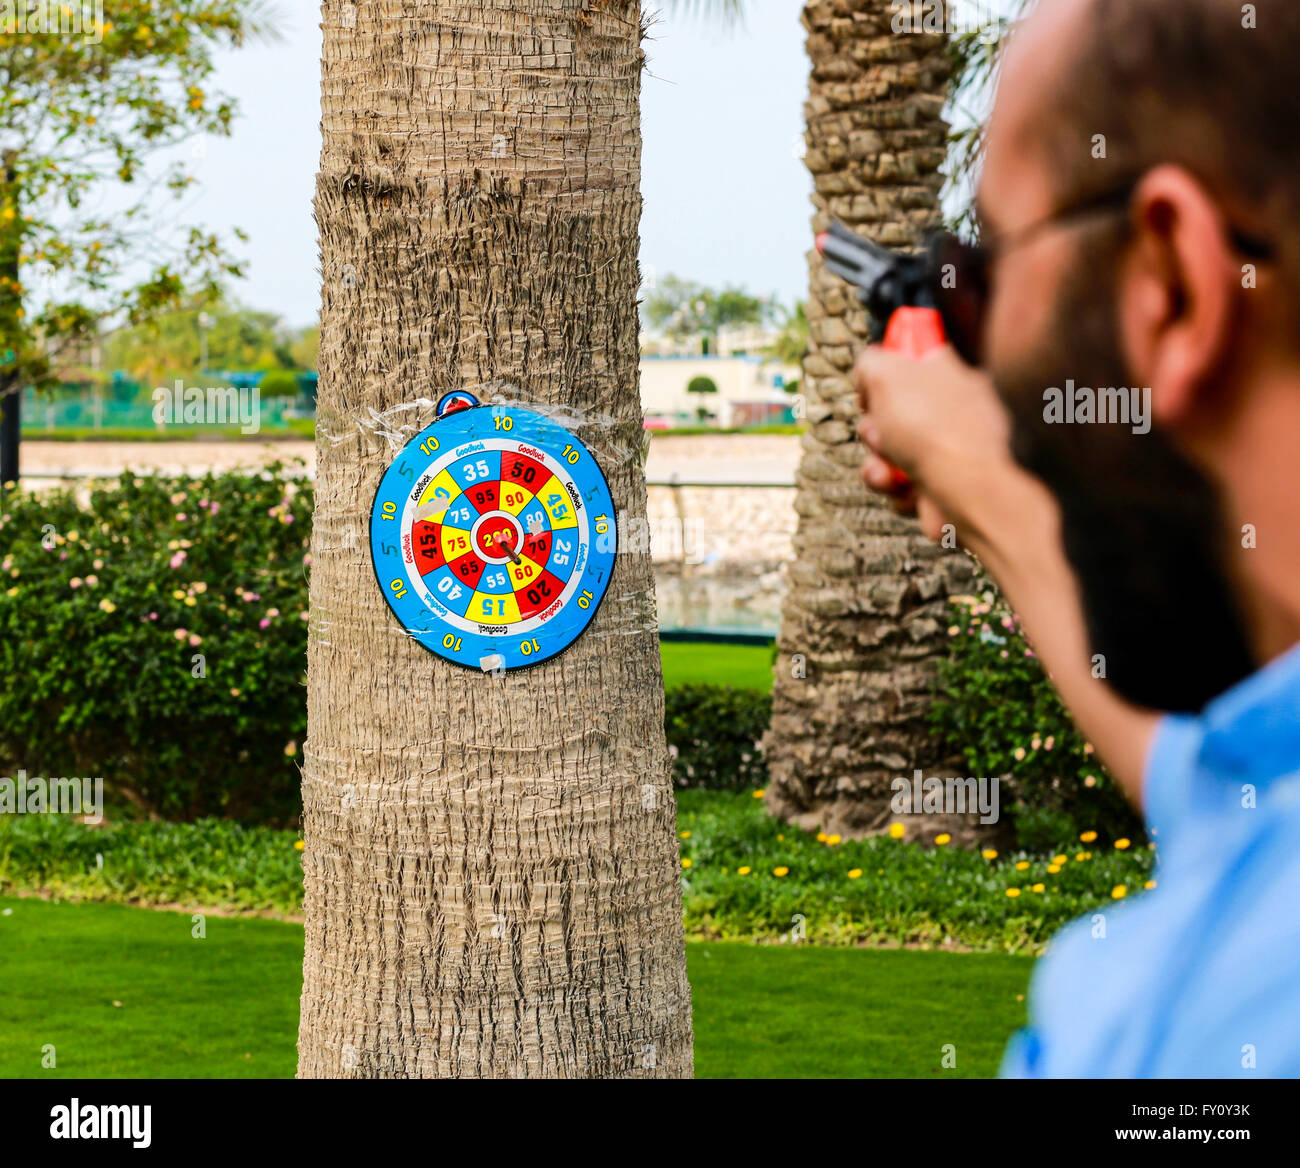 Aim is achieved! Men shoots to the target. - Stock Image